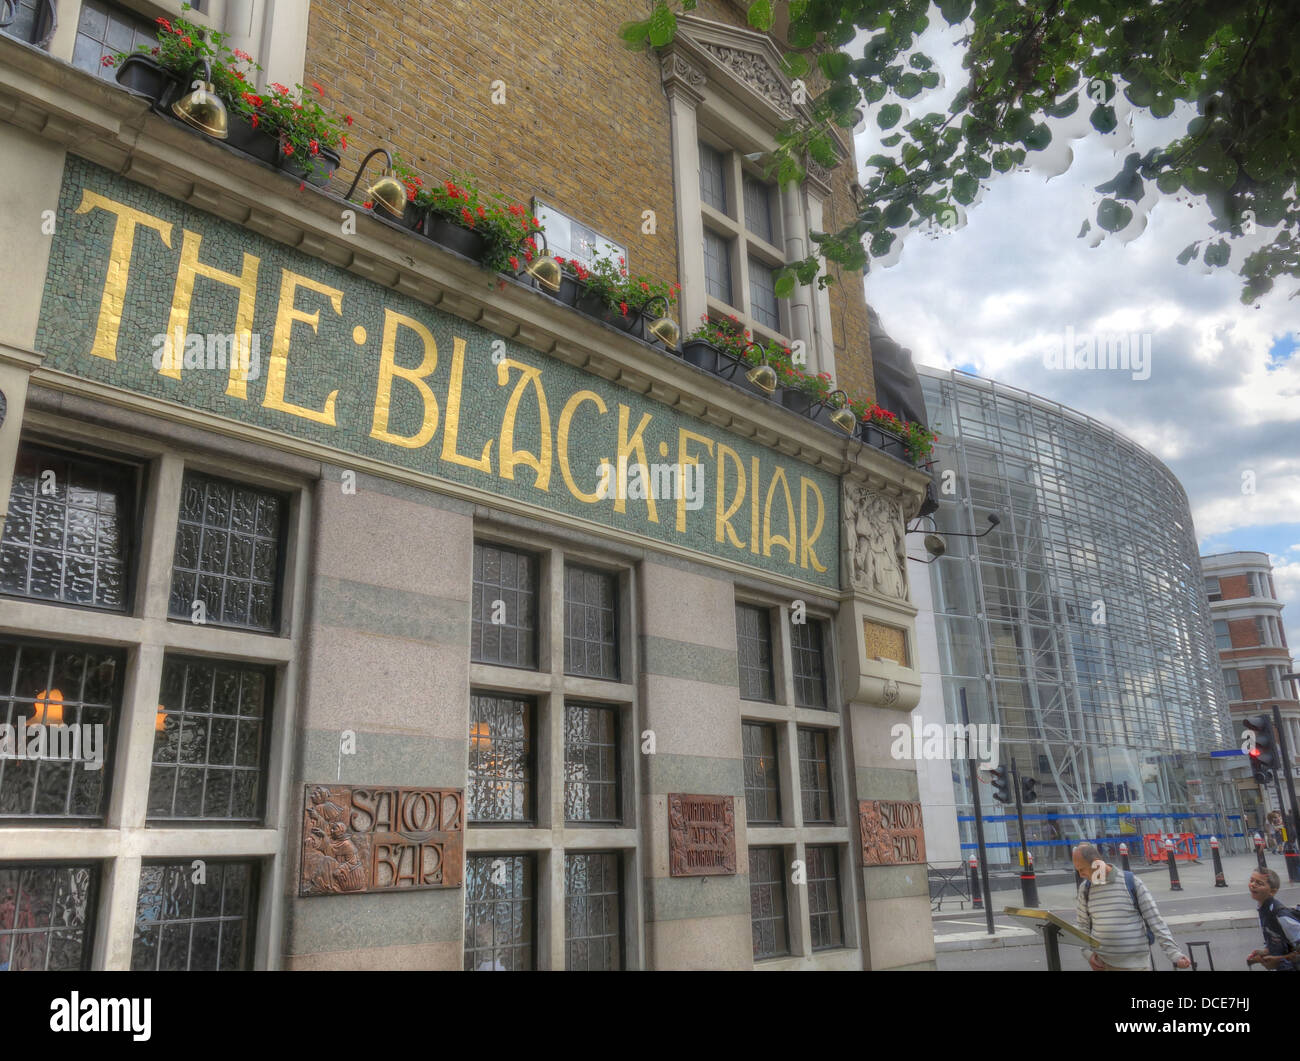 Classic,bar,public,house,mosaic,station,tube,underground,CAMRA,pubs,GB,Great,British,Britain,English,England,174,Queen,Victoria,Street,EC4V,4EG,EC4V4EG,belonging,to,Nicholsons,a,chain,founded,in,1905,in,the,Arts,and,Crafts,Nicholsons,Nicholson,real,ale,beers,beer,cider,art,arty,drink,pint,a,at,gotonysmith north of the Thames traditional unique pubs Bridge,Upper,Thames,Street,and,Fleet,Street,history,historic,Art,Nouveau,Grade,II,masterpiece,of,a,pub,was,built,in,1905,on,the,site,of,a,Dominican,friary,The,building,was,designed,by,architect,H.,Fuller-Clark,and,artist,Henry,Poole,both,committed,to,the,free-thinking,of,the,Arts,and,Crafts,Movement,Jolly,friars,appear,everywhere,in,the,pub,in,sculptures,mosaics,and,reliefs,wonderful,pub,was,saved,from,demolition,by,a,campaign,led,by,Sir,John,Betjeman,pubs,bars,of,London,classic,tourist,attraction,travel,vacation,Buy Pictures of,Buy Images Of,Pubs Of London,must see